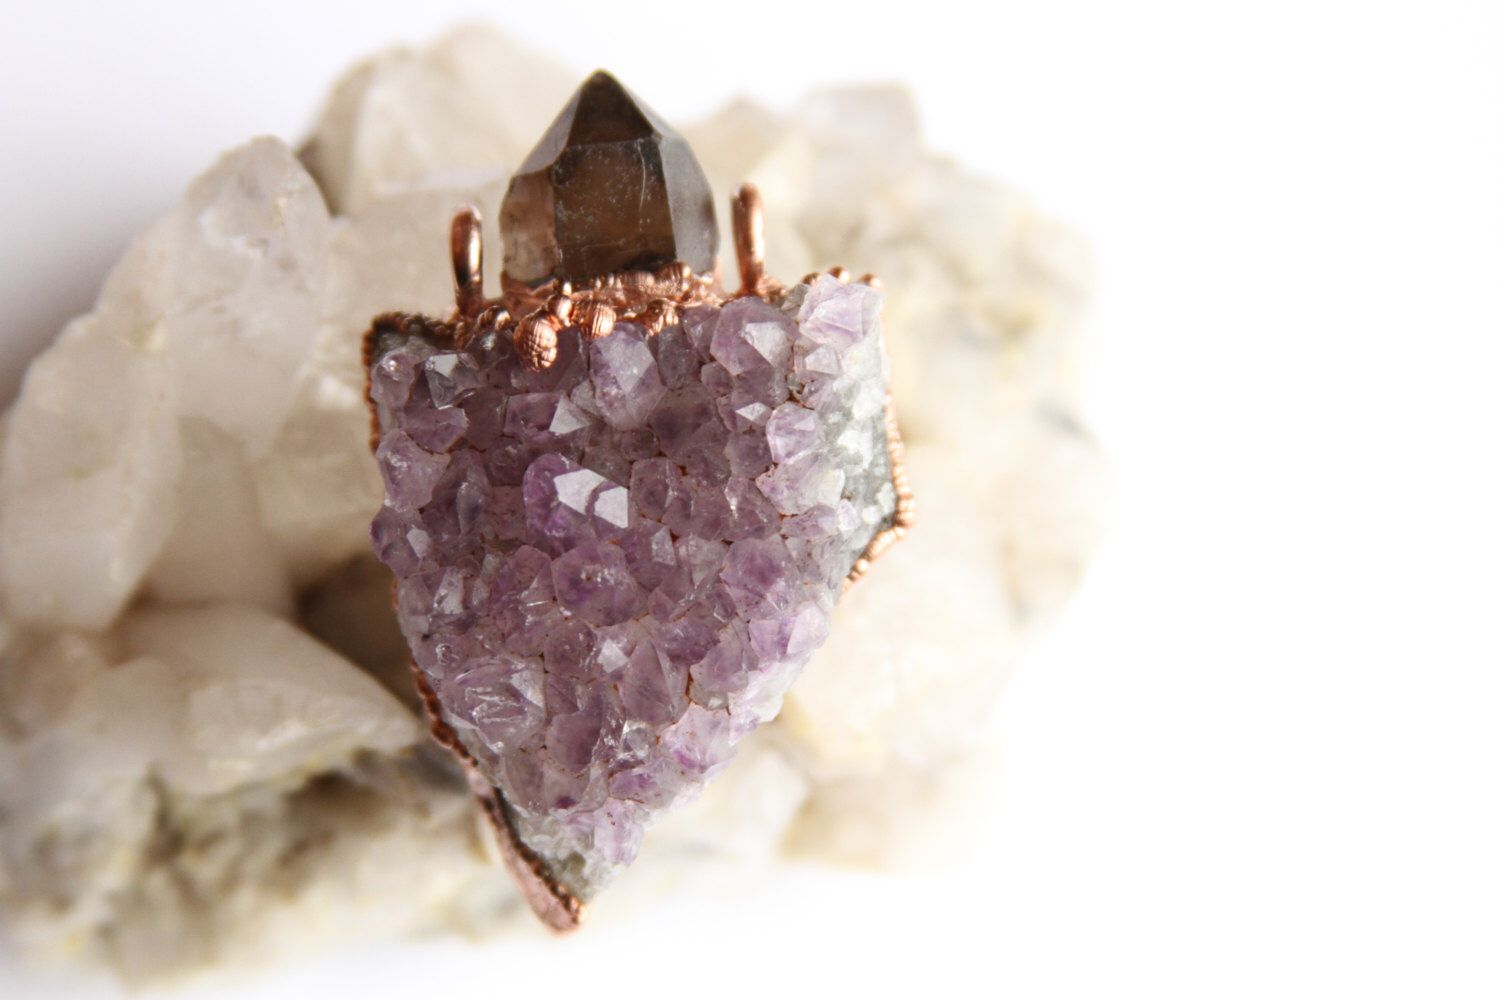 Amethyst Cluster and Smokey Quartz Point Copper Electroformed Pendant // Witchy Raw Crystal Necklace // Smoky Quartz Amethyst Druzy Necklace by CrystalVisionGems on Etsy https://www.etsy.com/listing/494075259/amethyst-cluster-and-smokey-quartz-point